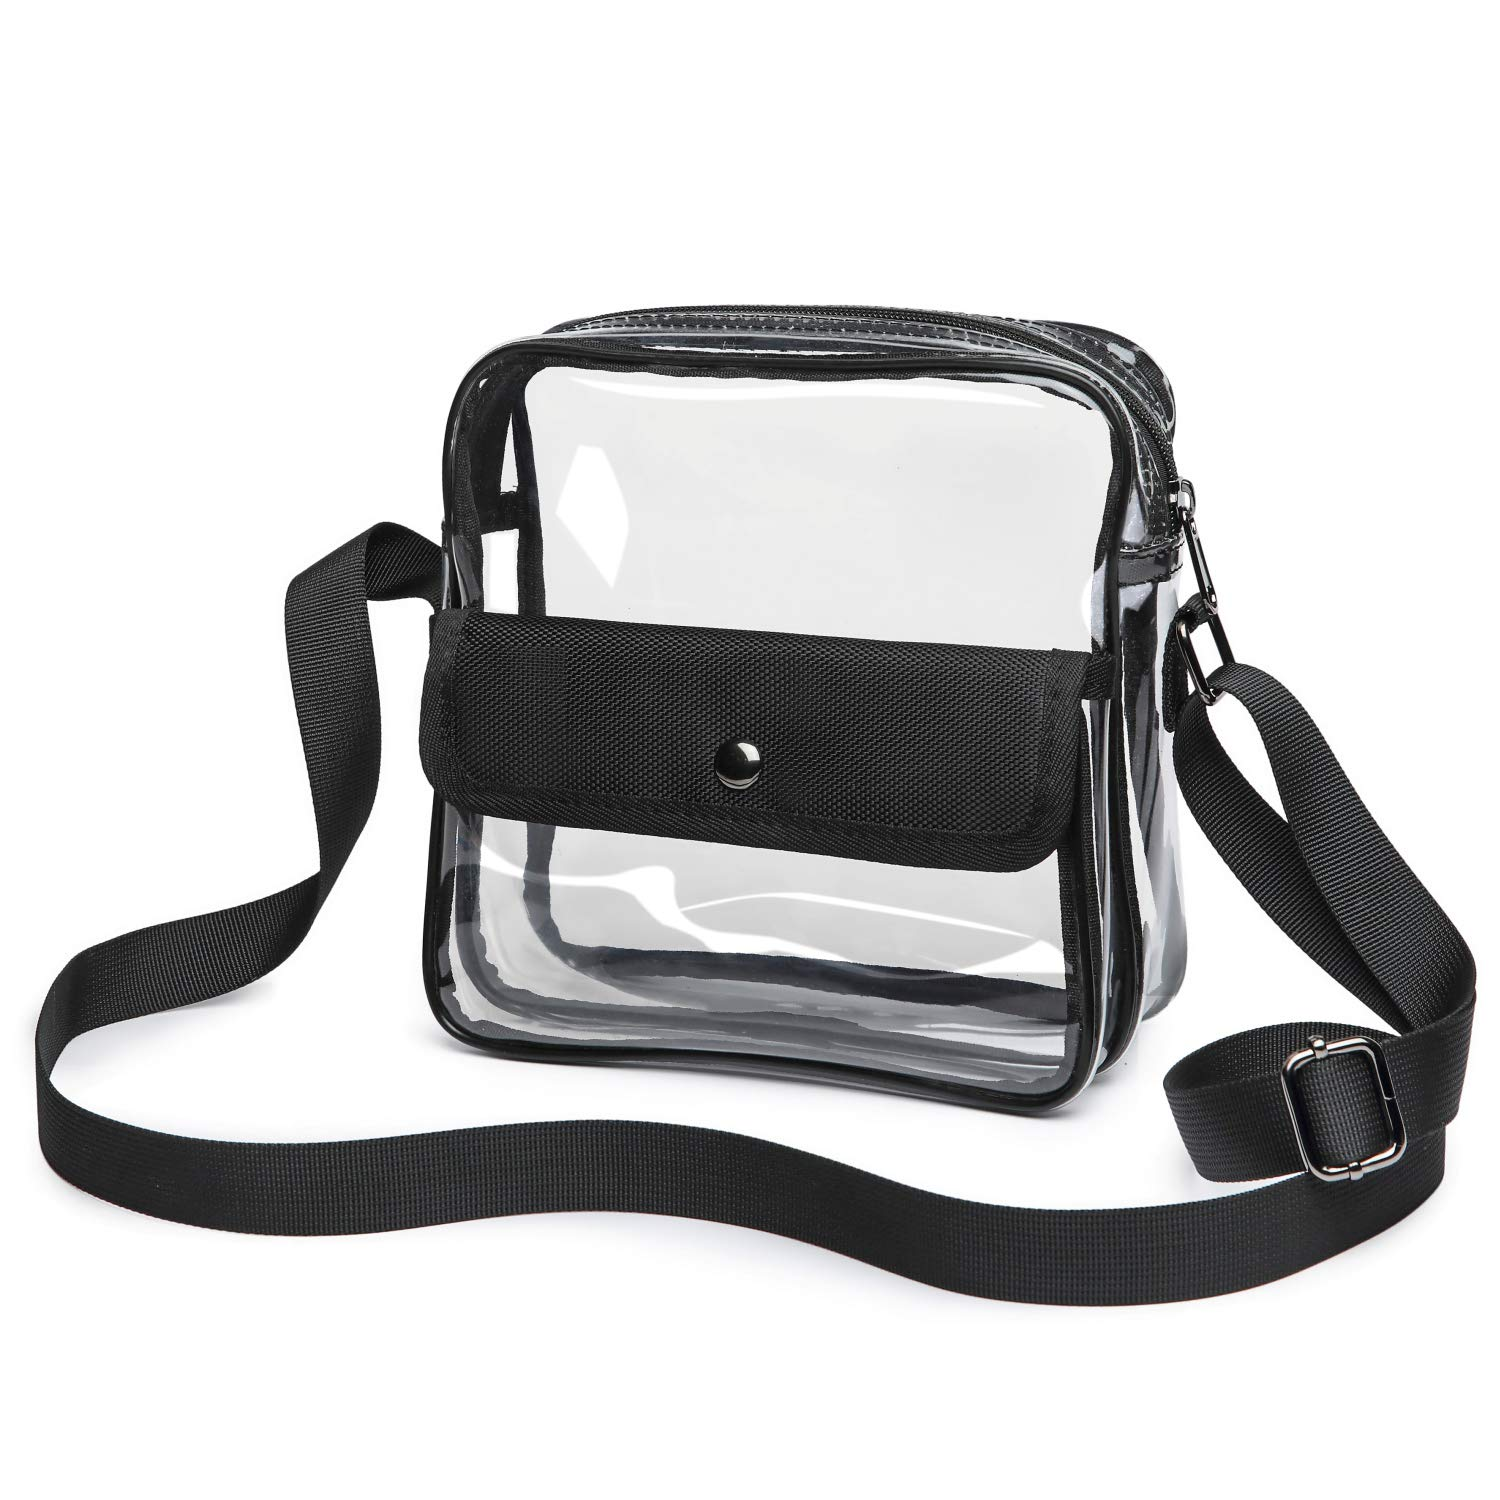 57f26391f4f90 Clear Purse Stadium Approved for NFL, PGA, Clear Crossbody Bag for Rolling  Stones Hamilton Concert Women Men Work School